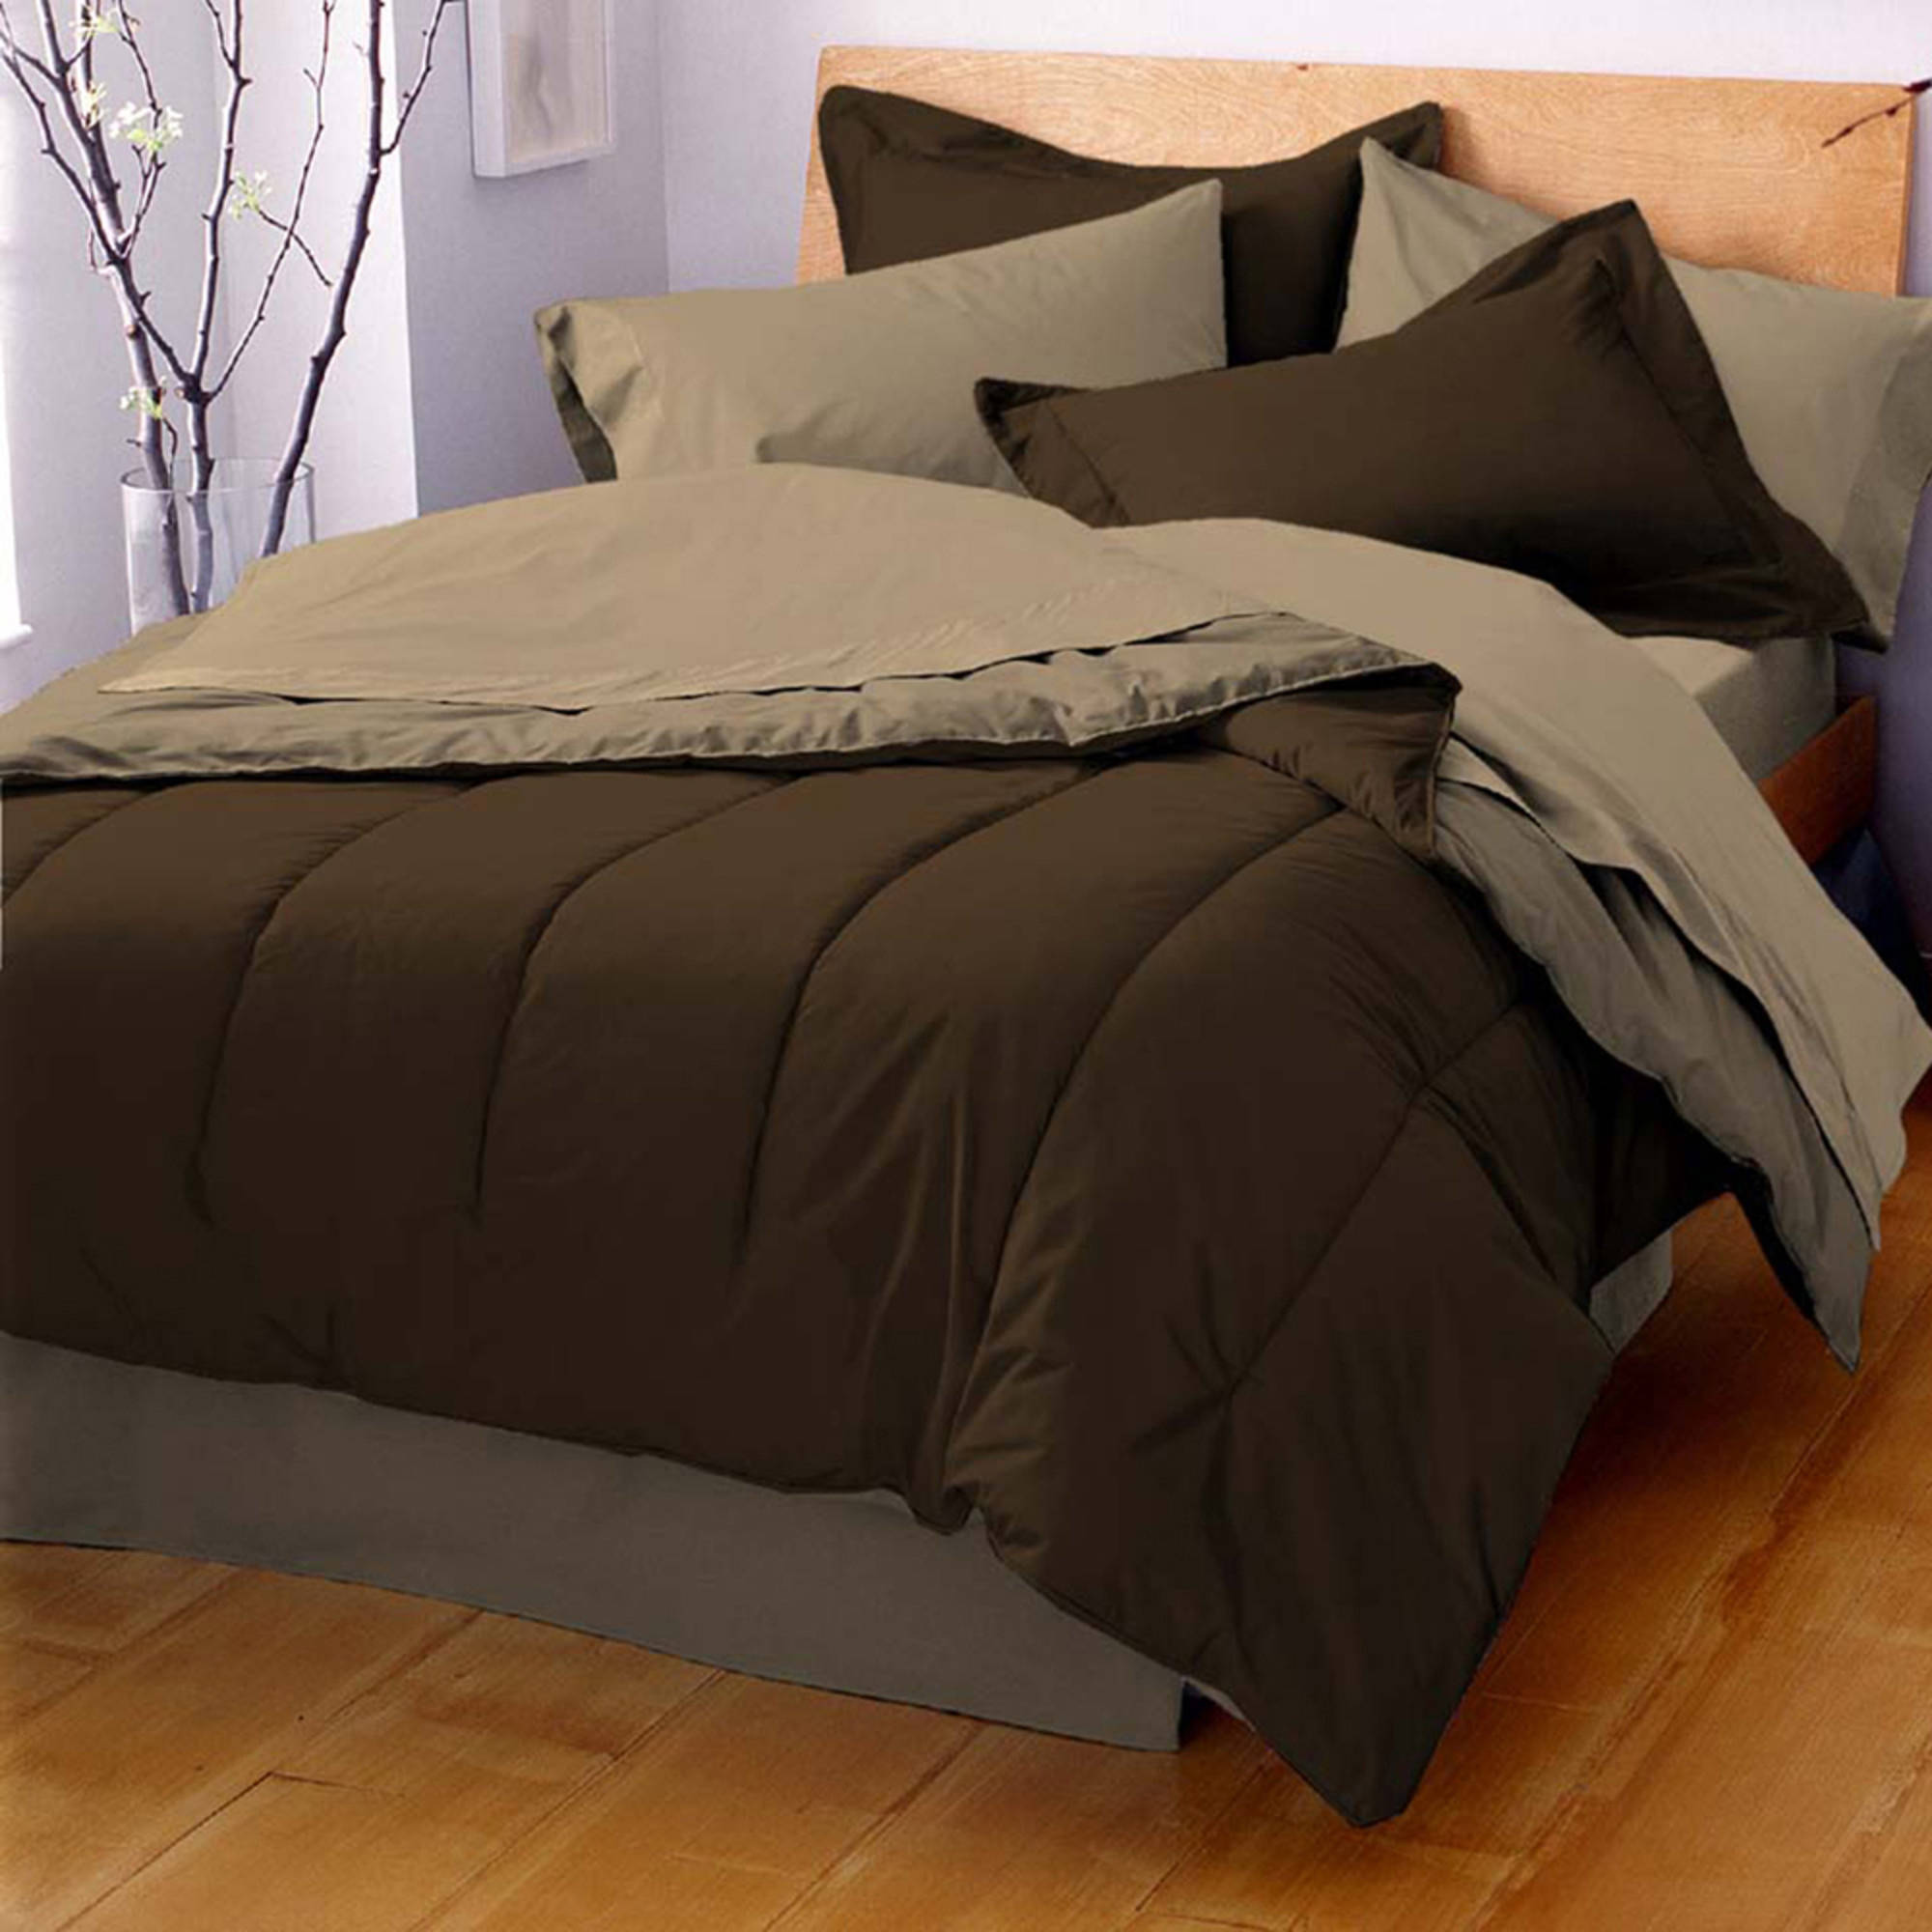 comforters lovely grey gray comforter solid color set twin bed